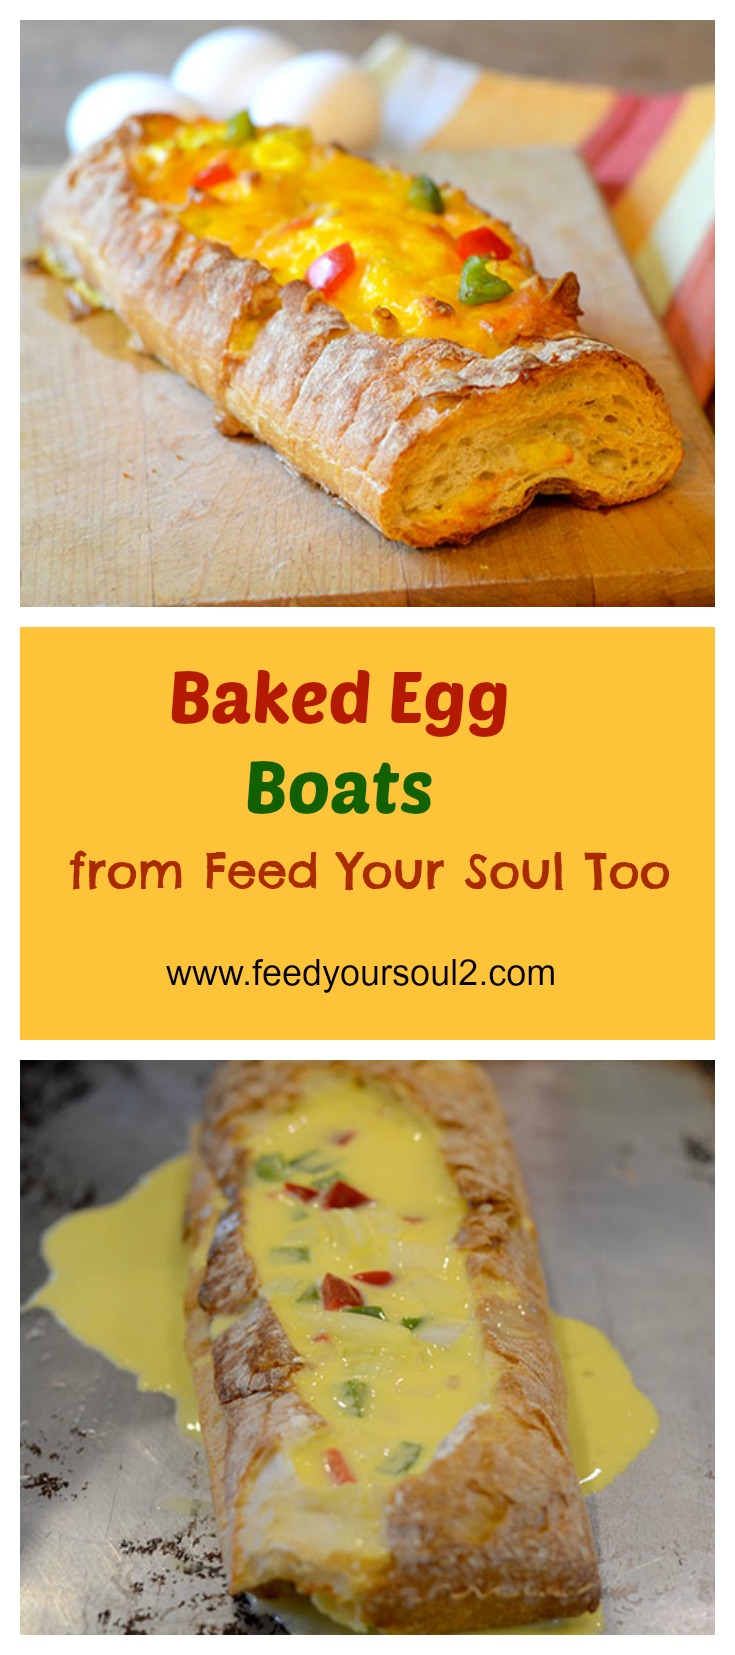 Baked Egg Boats #Bread #Breakfast #Eggs | feedyoursoul2.com